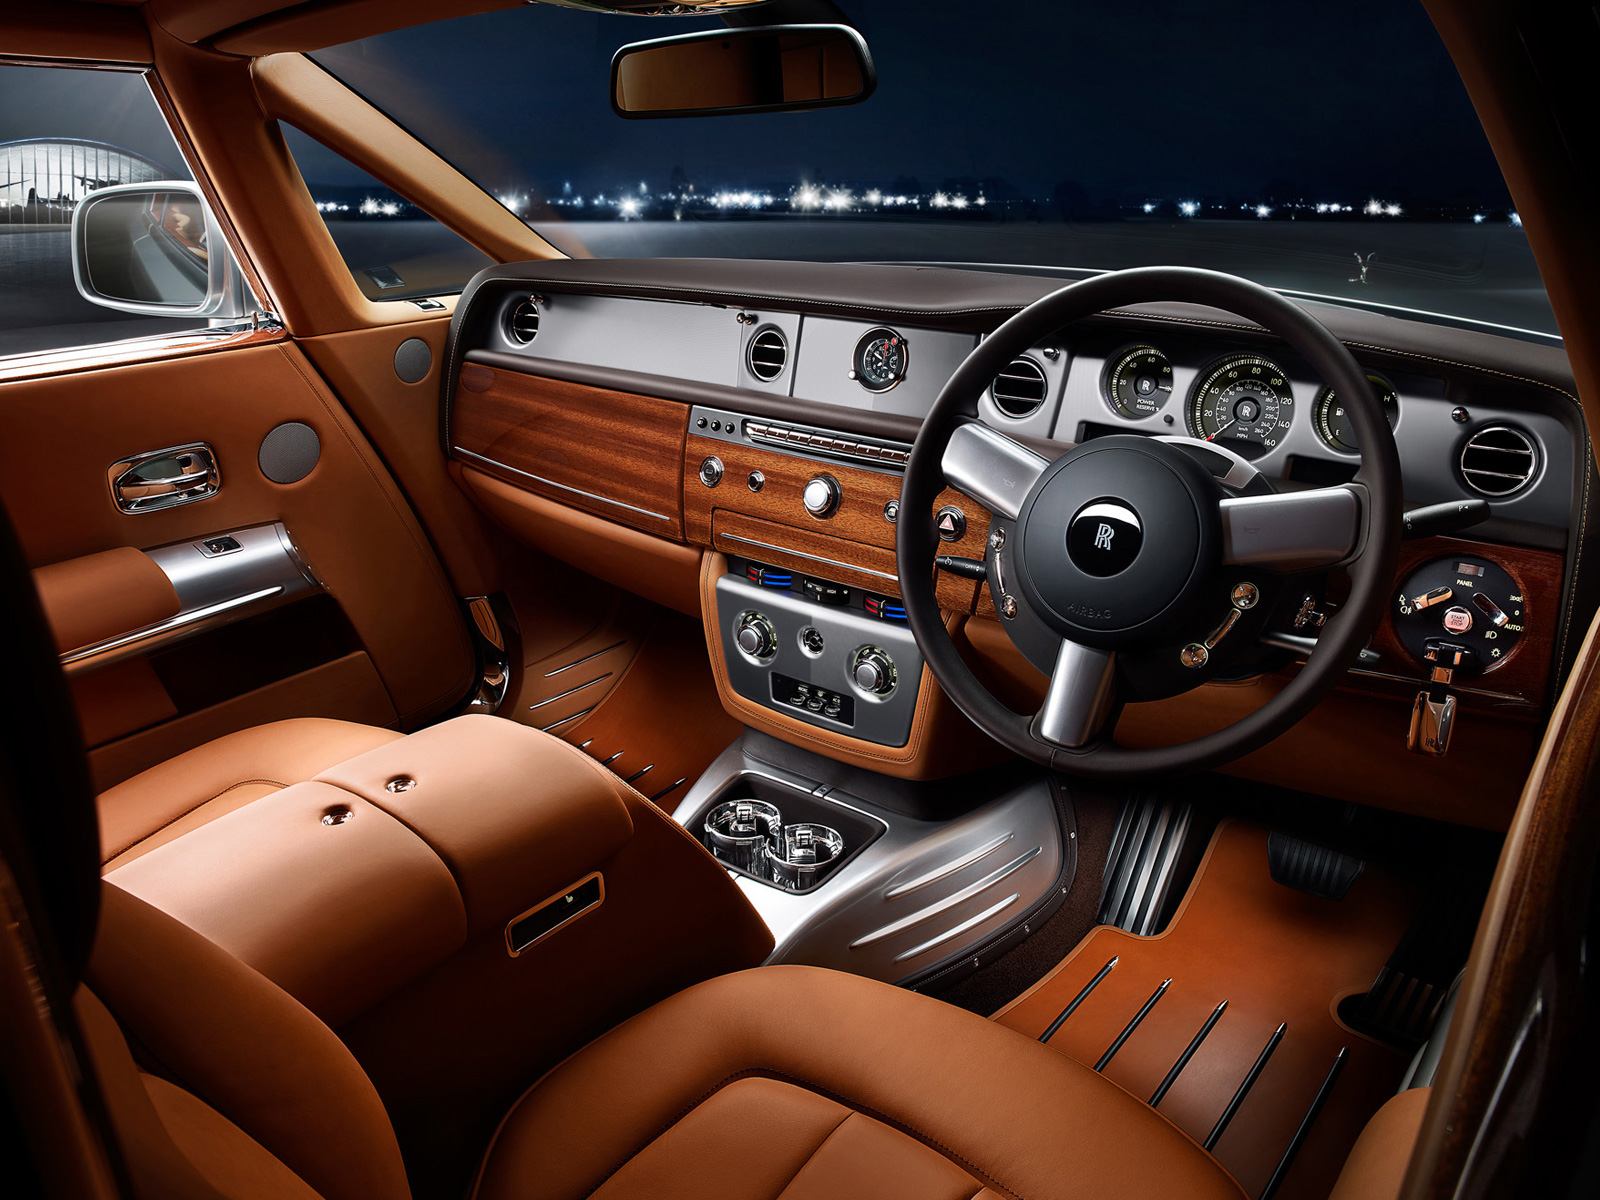 SPORTS CARS: Rolls Royce phantom 2013 interior